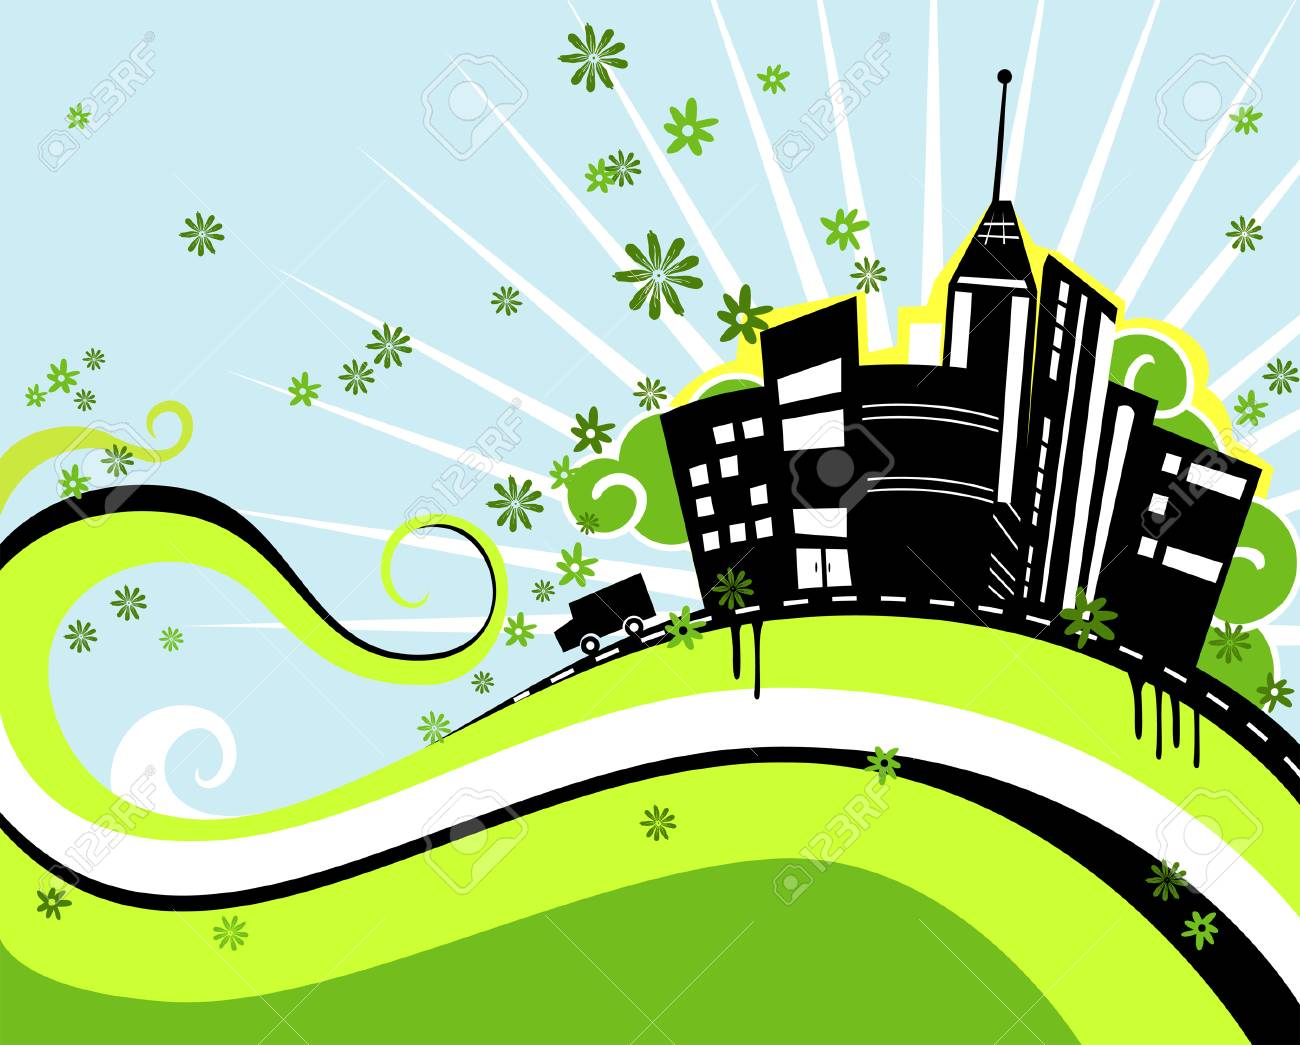 Urban Design in Green and Black Stock Vector - 3071631